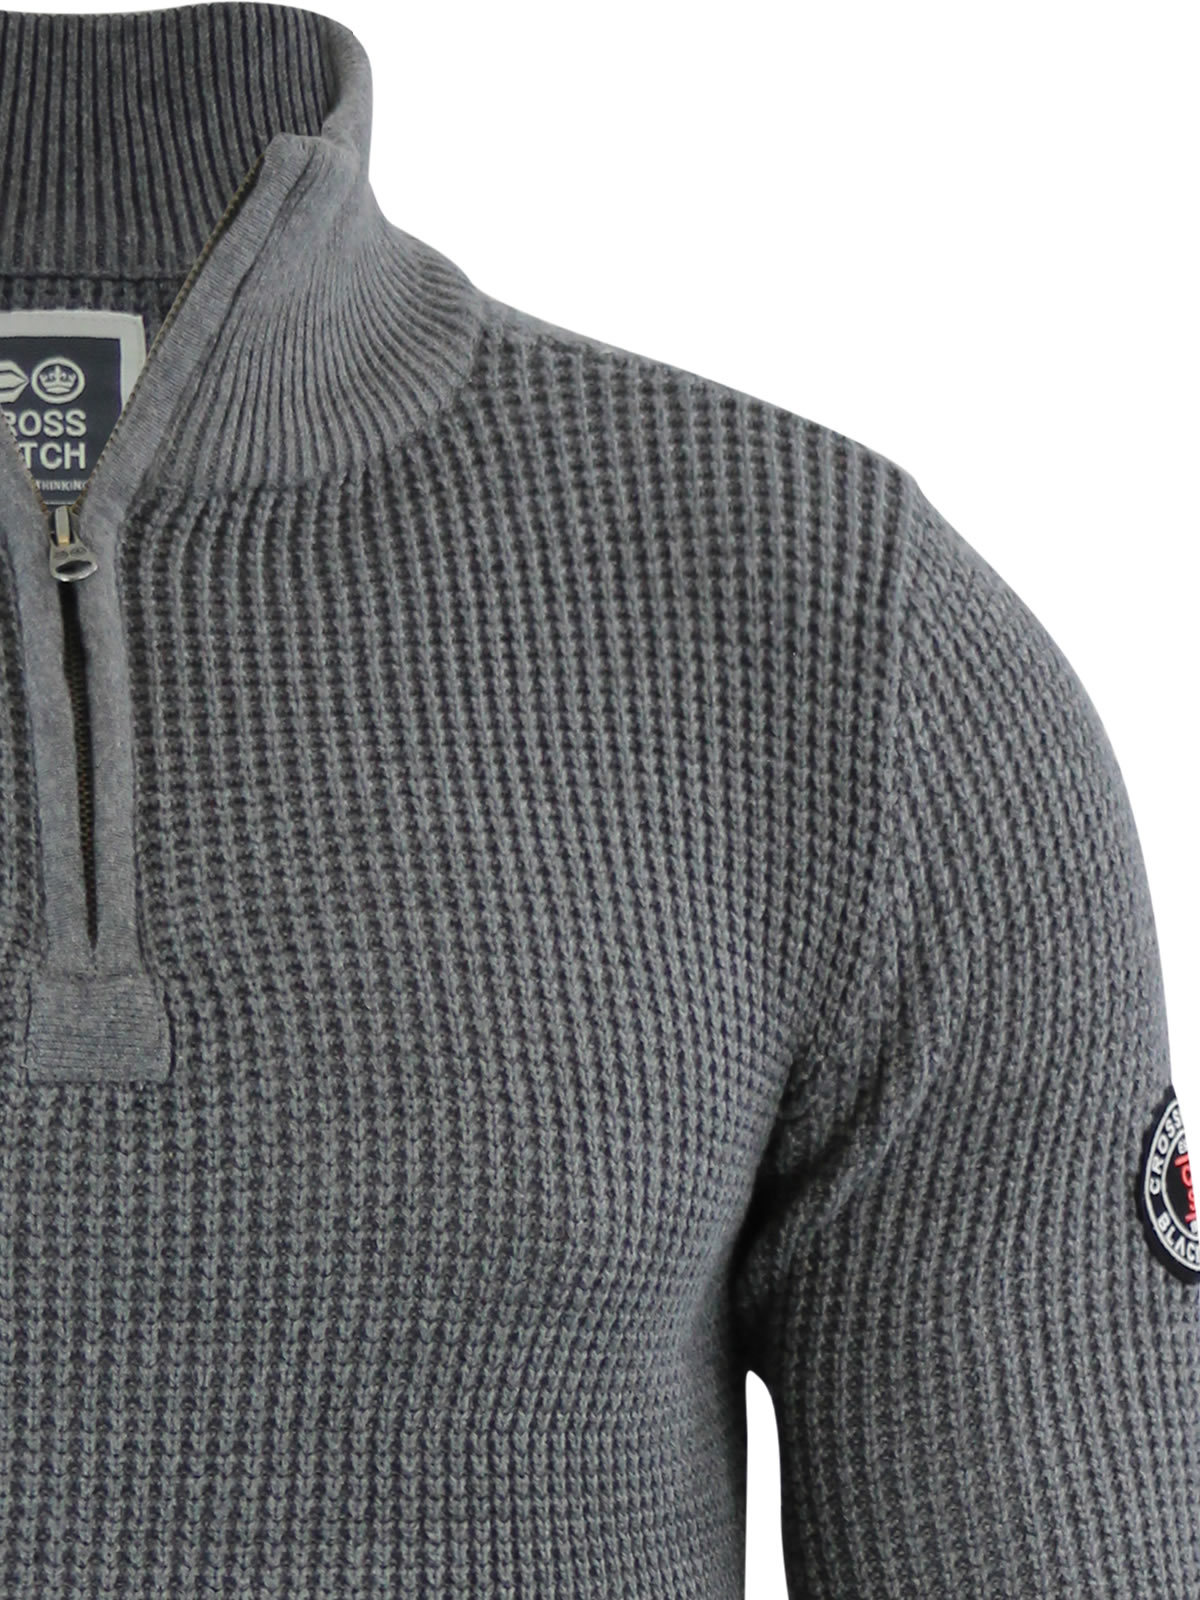 Mens Jumper Crosshatch Fireguard Waffle Knitted 1/4 Zip Up Funnel ...